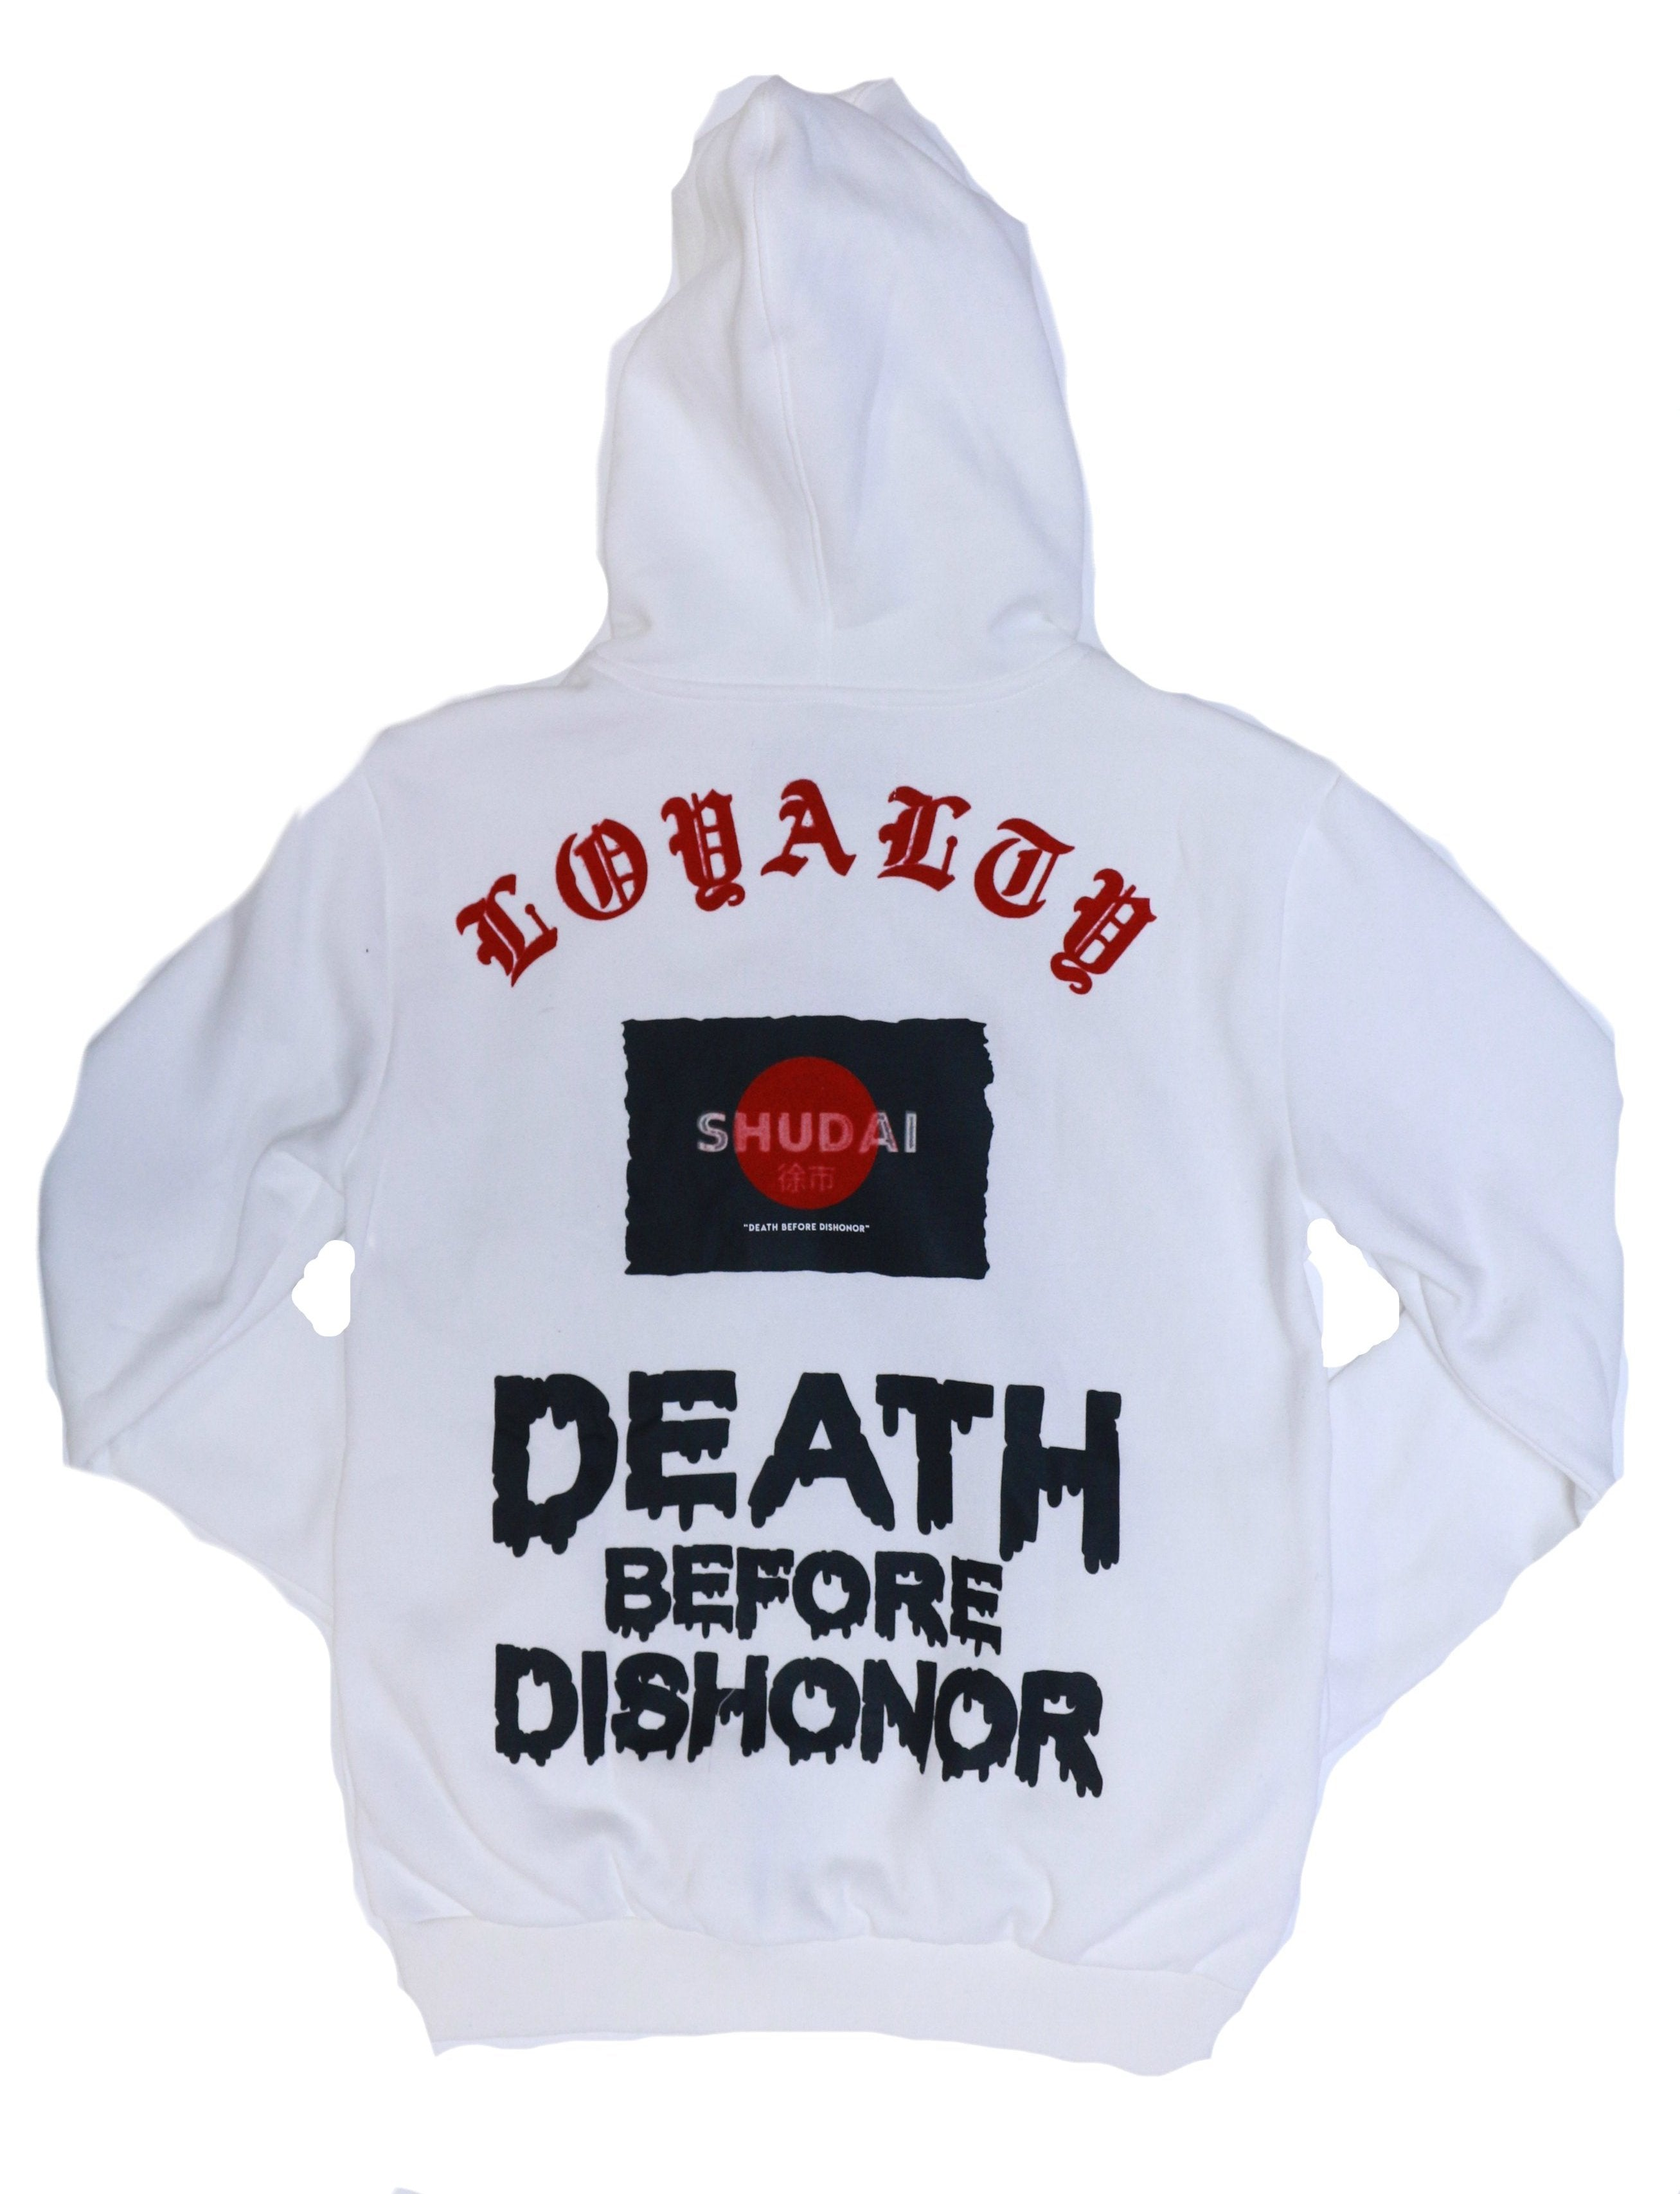 SHUDAI Death Before Dishonor 2 (White)